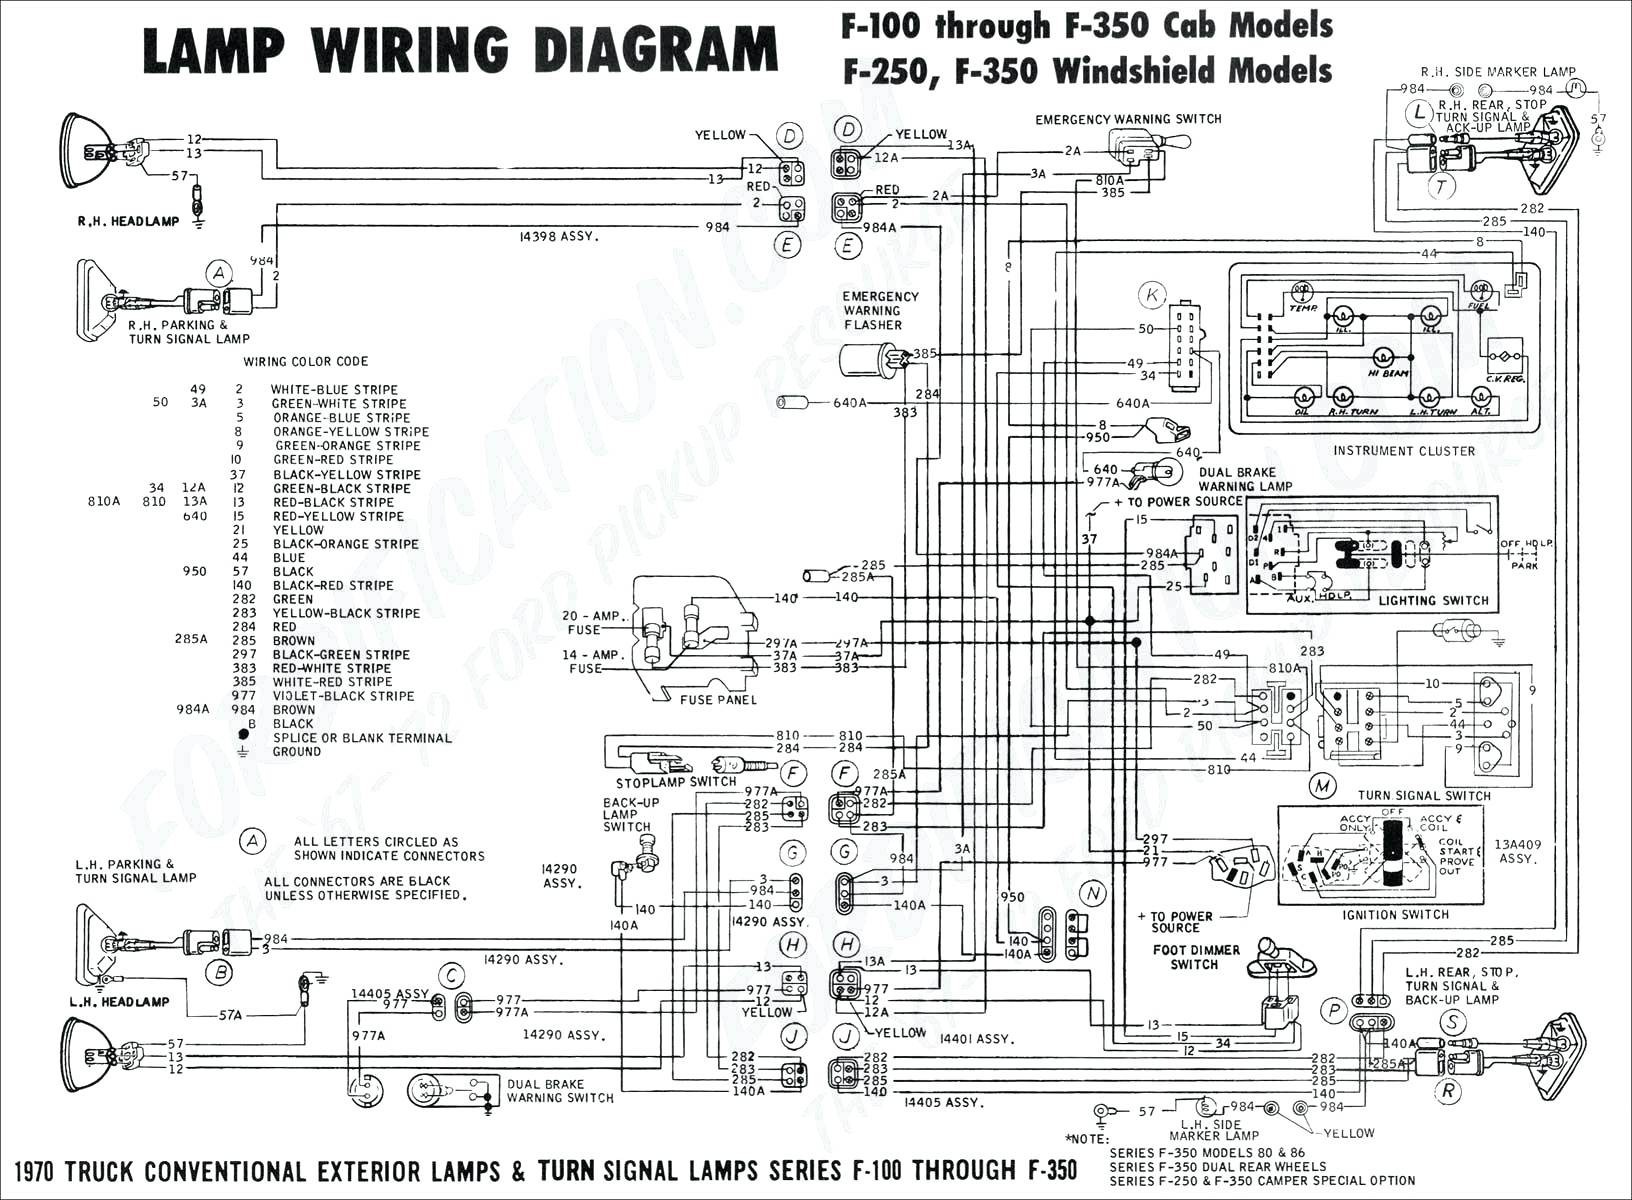 Gm 3800 Engine Diagram Fiero Ecm Wiring Harness Trusted Wiring Diagrams • Of Gm 3800 Engine Diagram